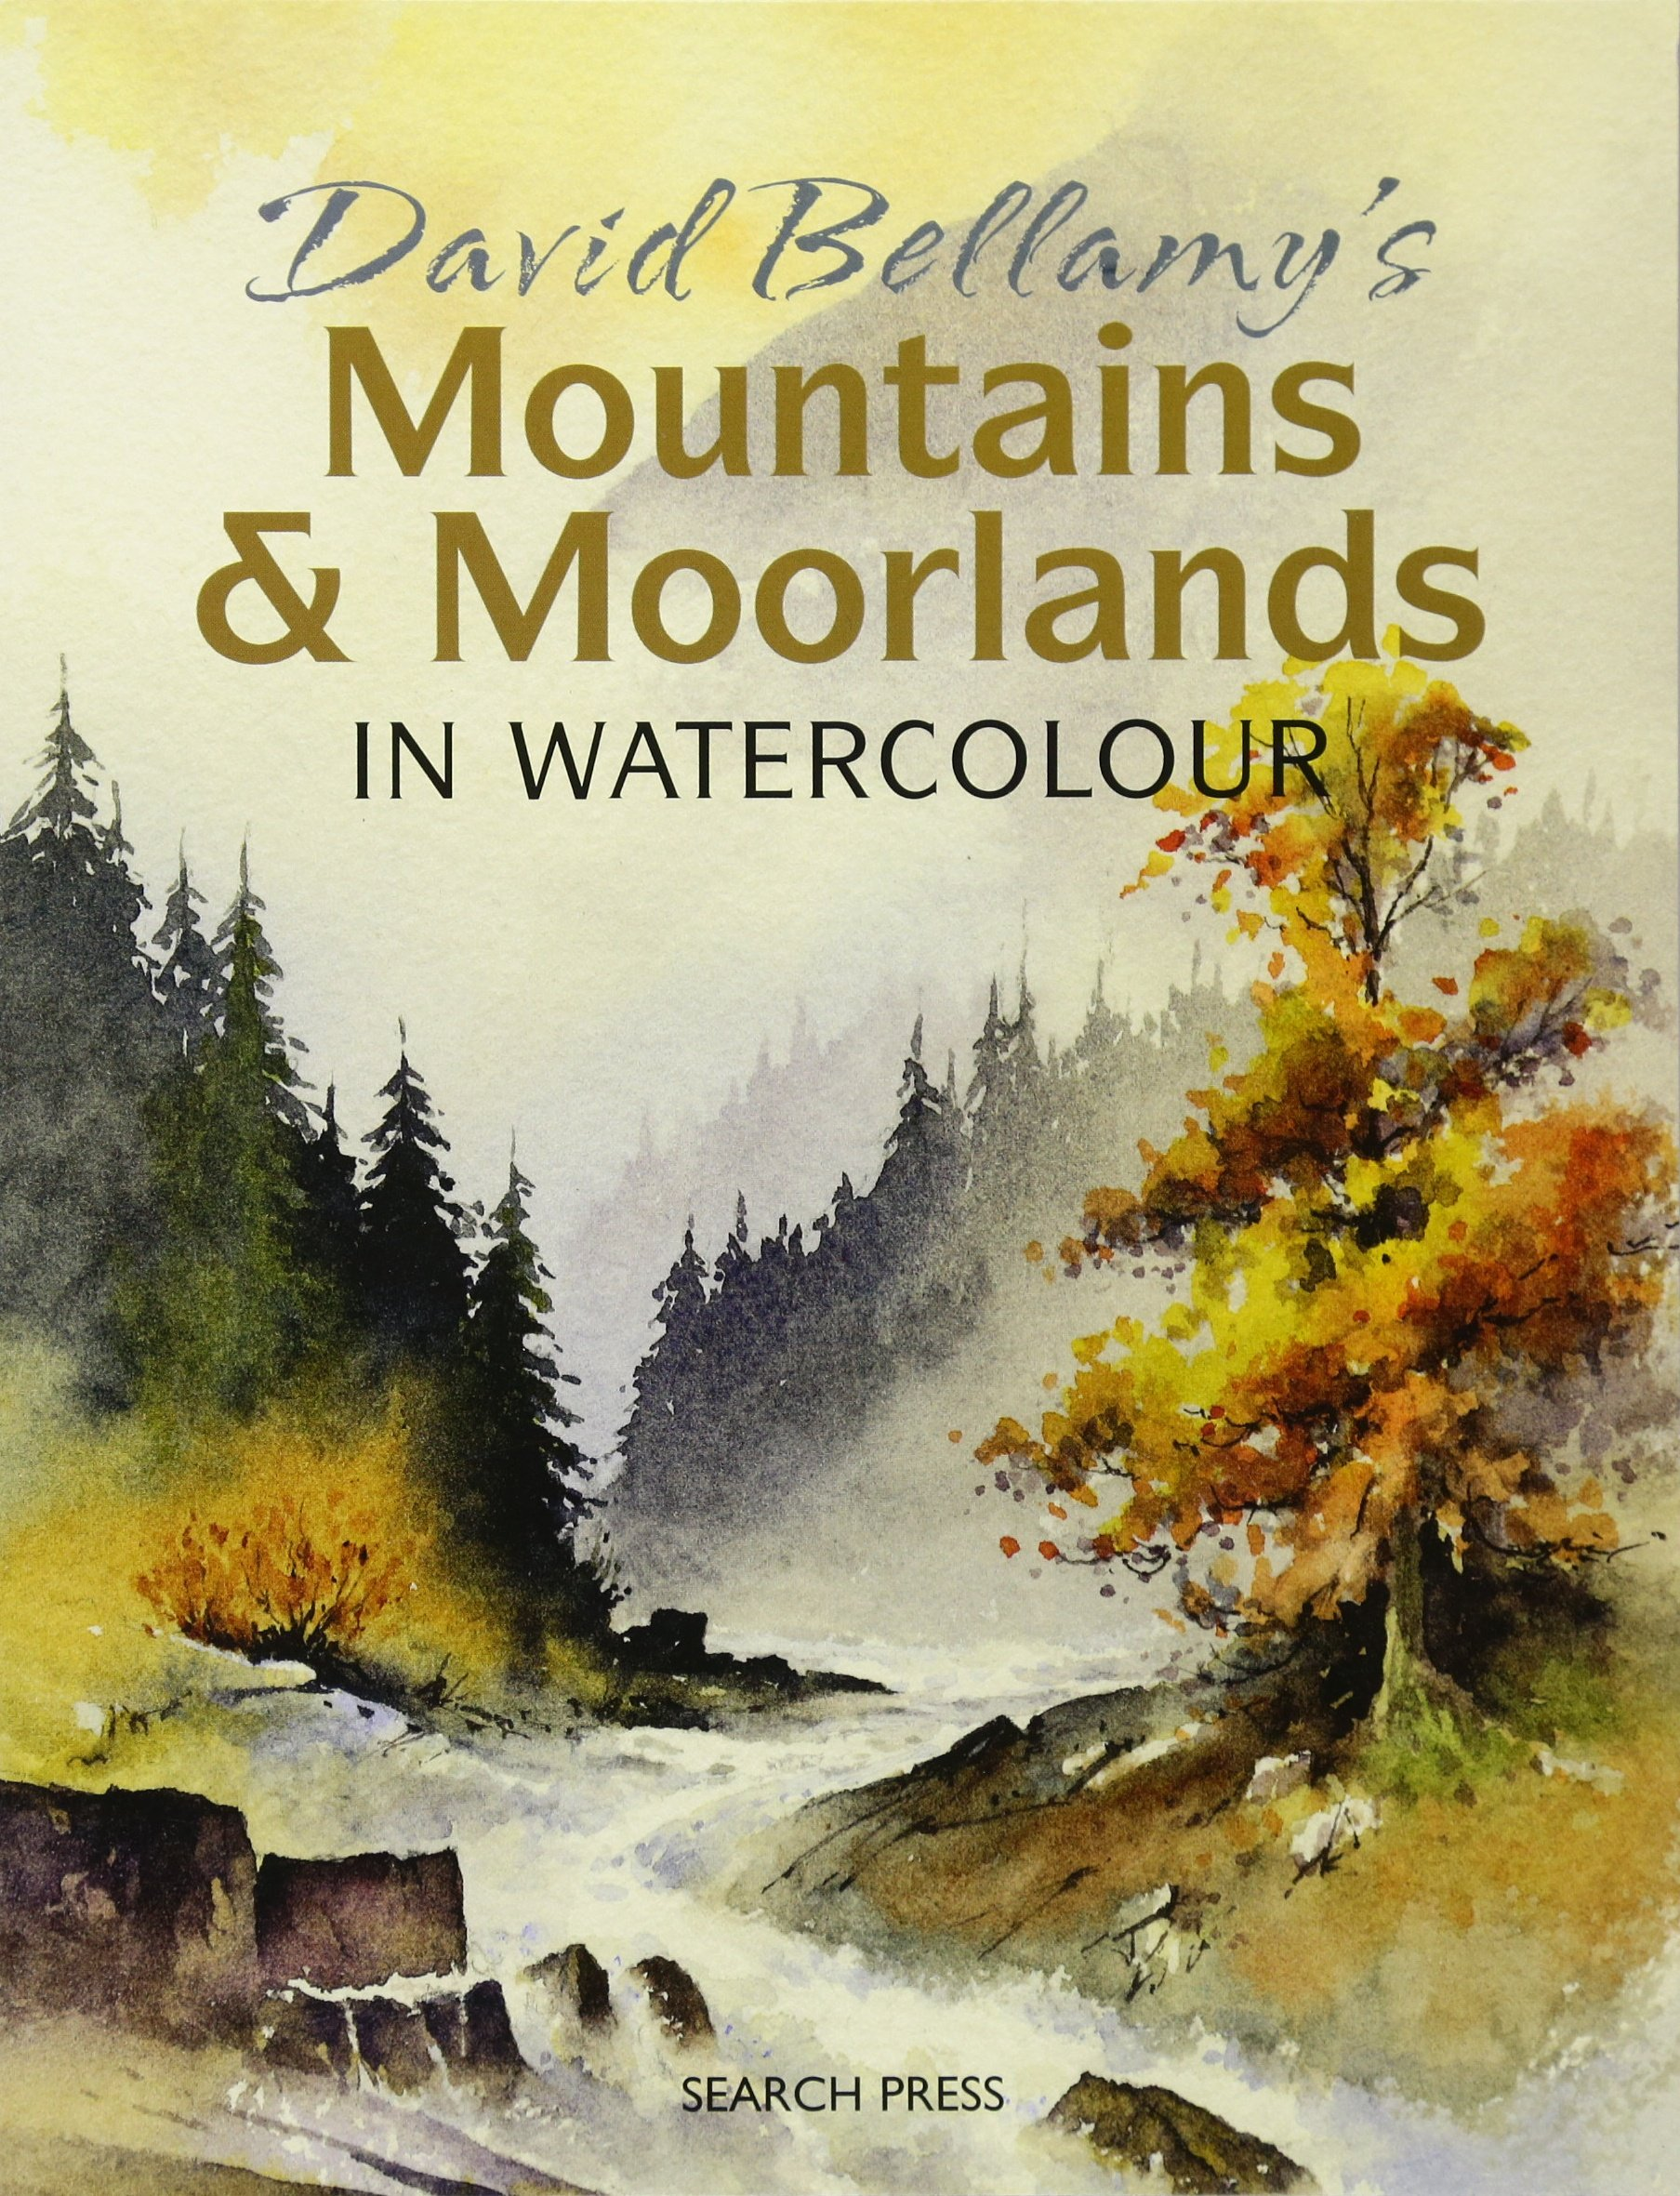 Watercolor books by search press - David Bellamy S Mountains Moorlands In Watercolour